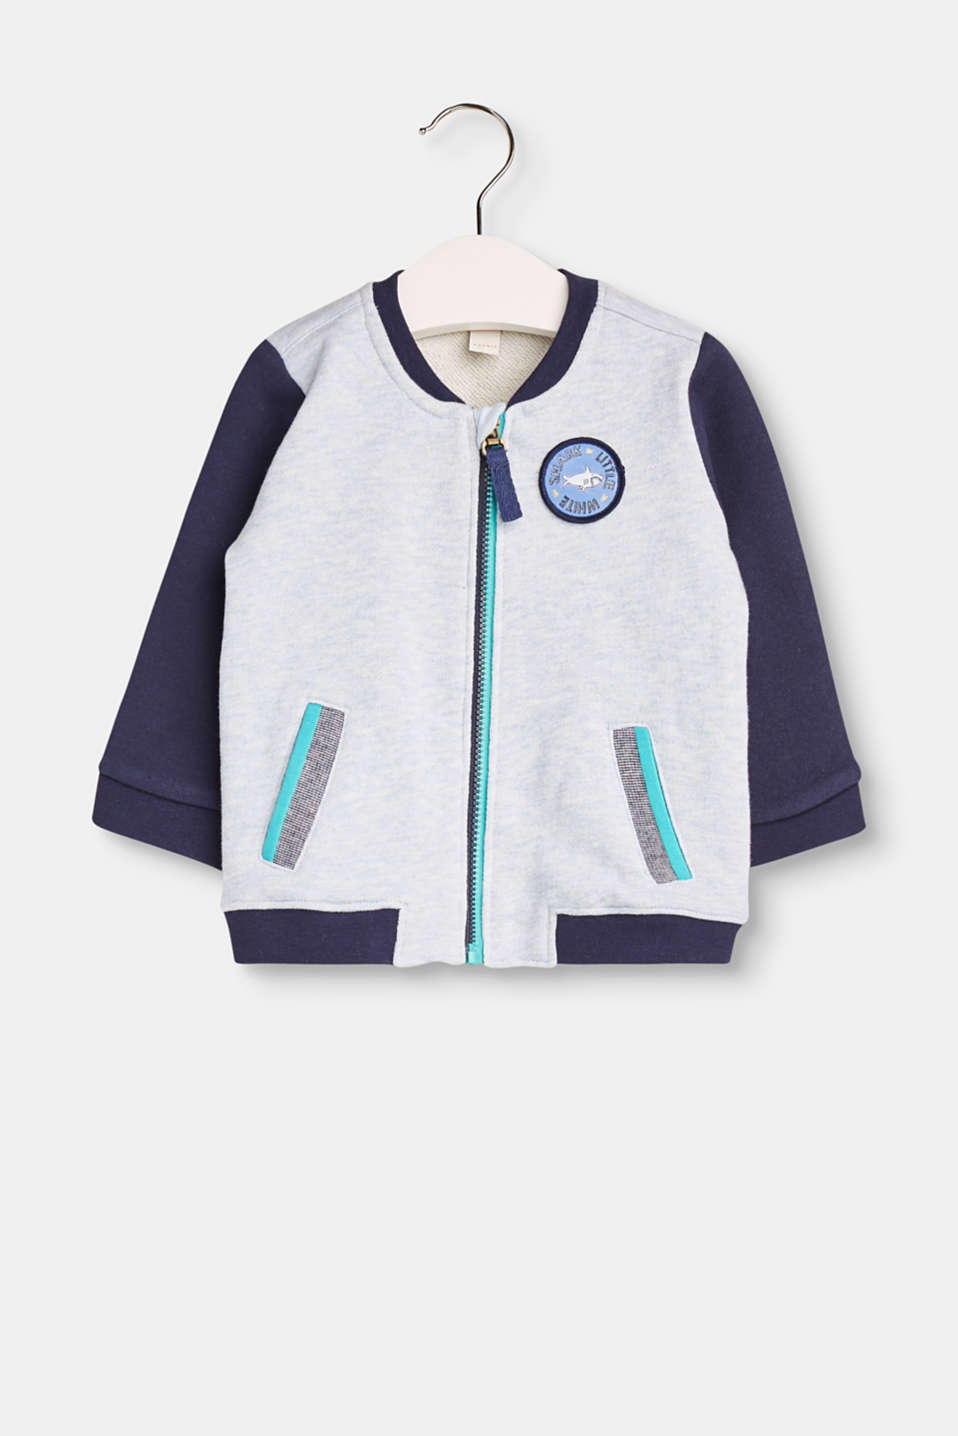 A cool college style for your little ones: This cardigan features small, fine details to create a big impact.